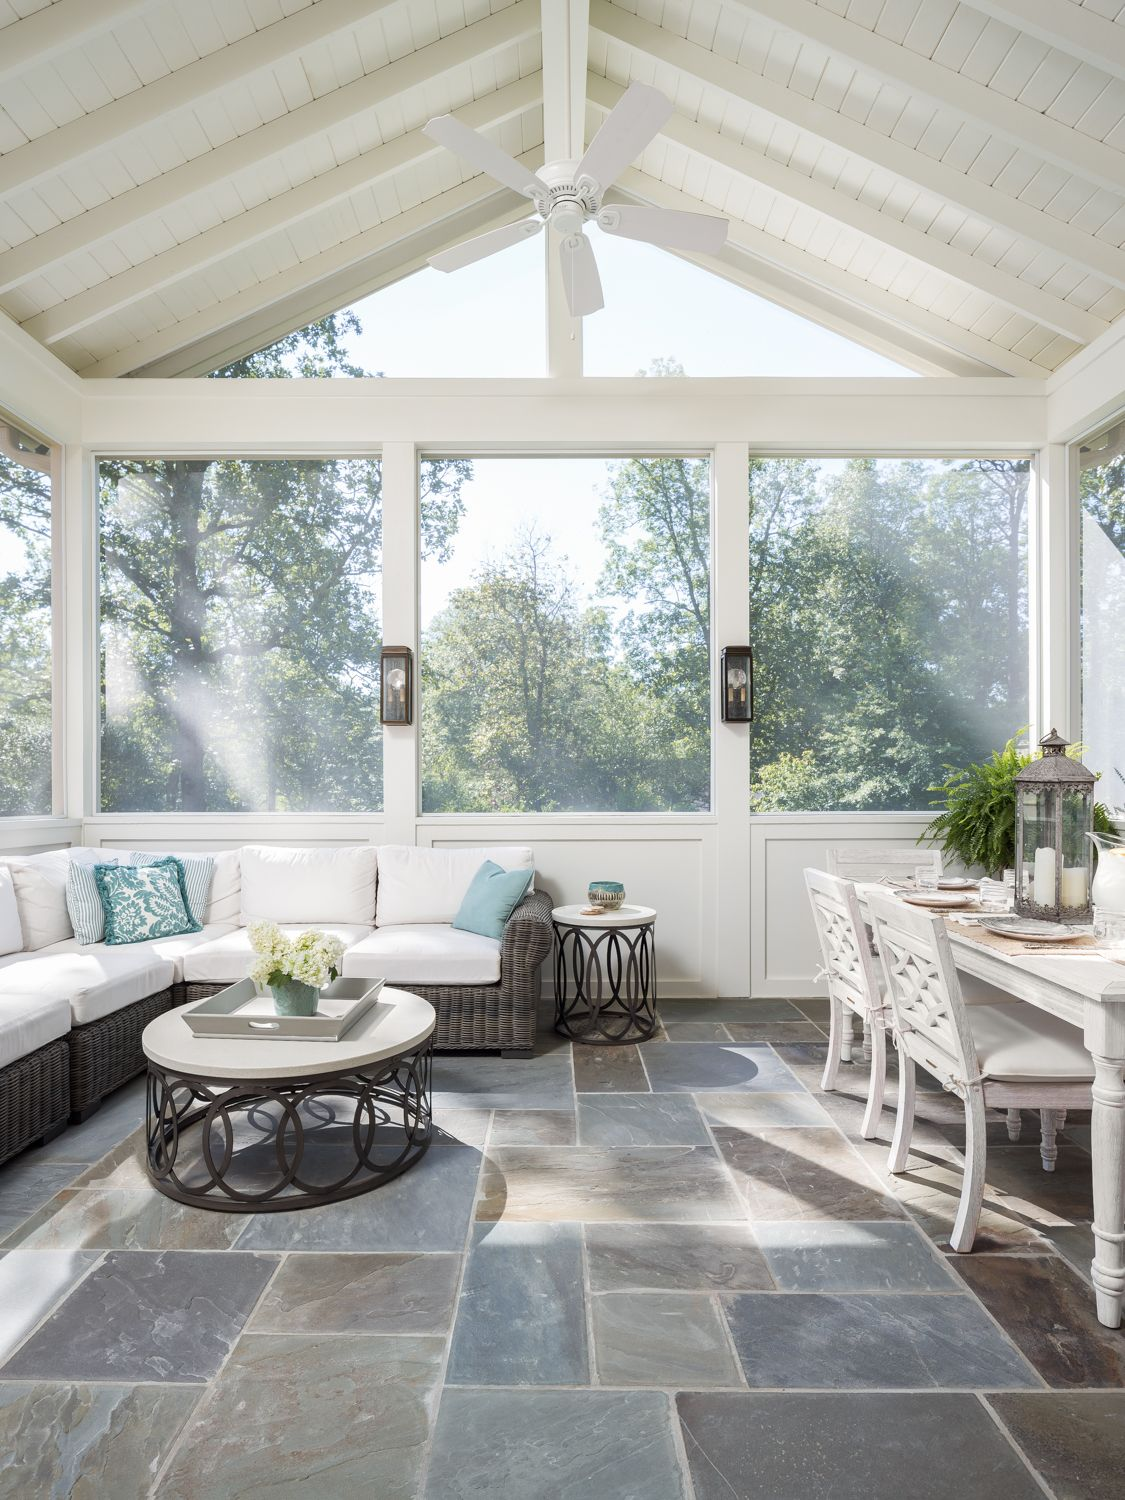 Covered Patio With Vaulted Ceiling And Fan Go Willow Homes Patio Room House With Porch Sunroom Designs